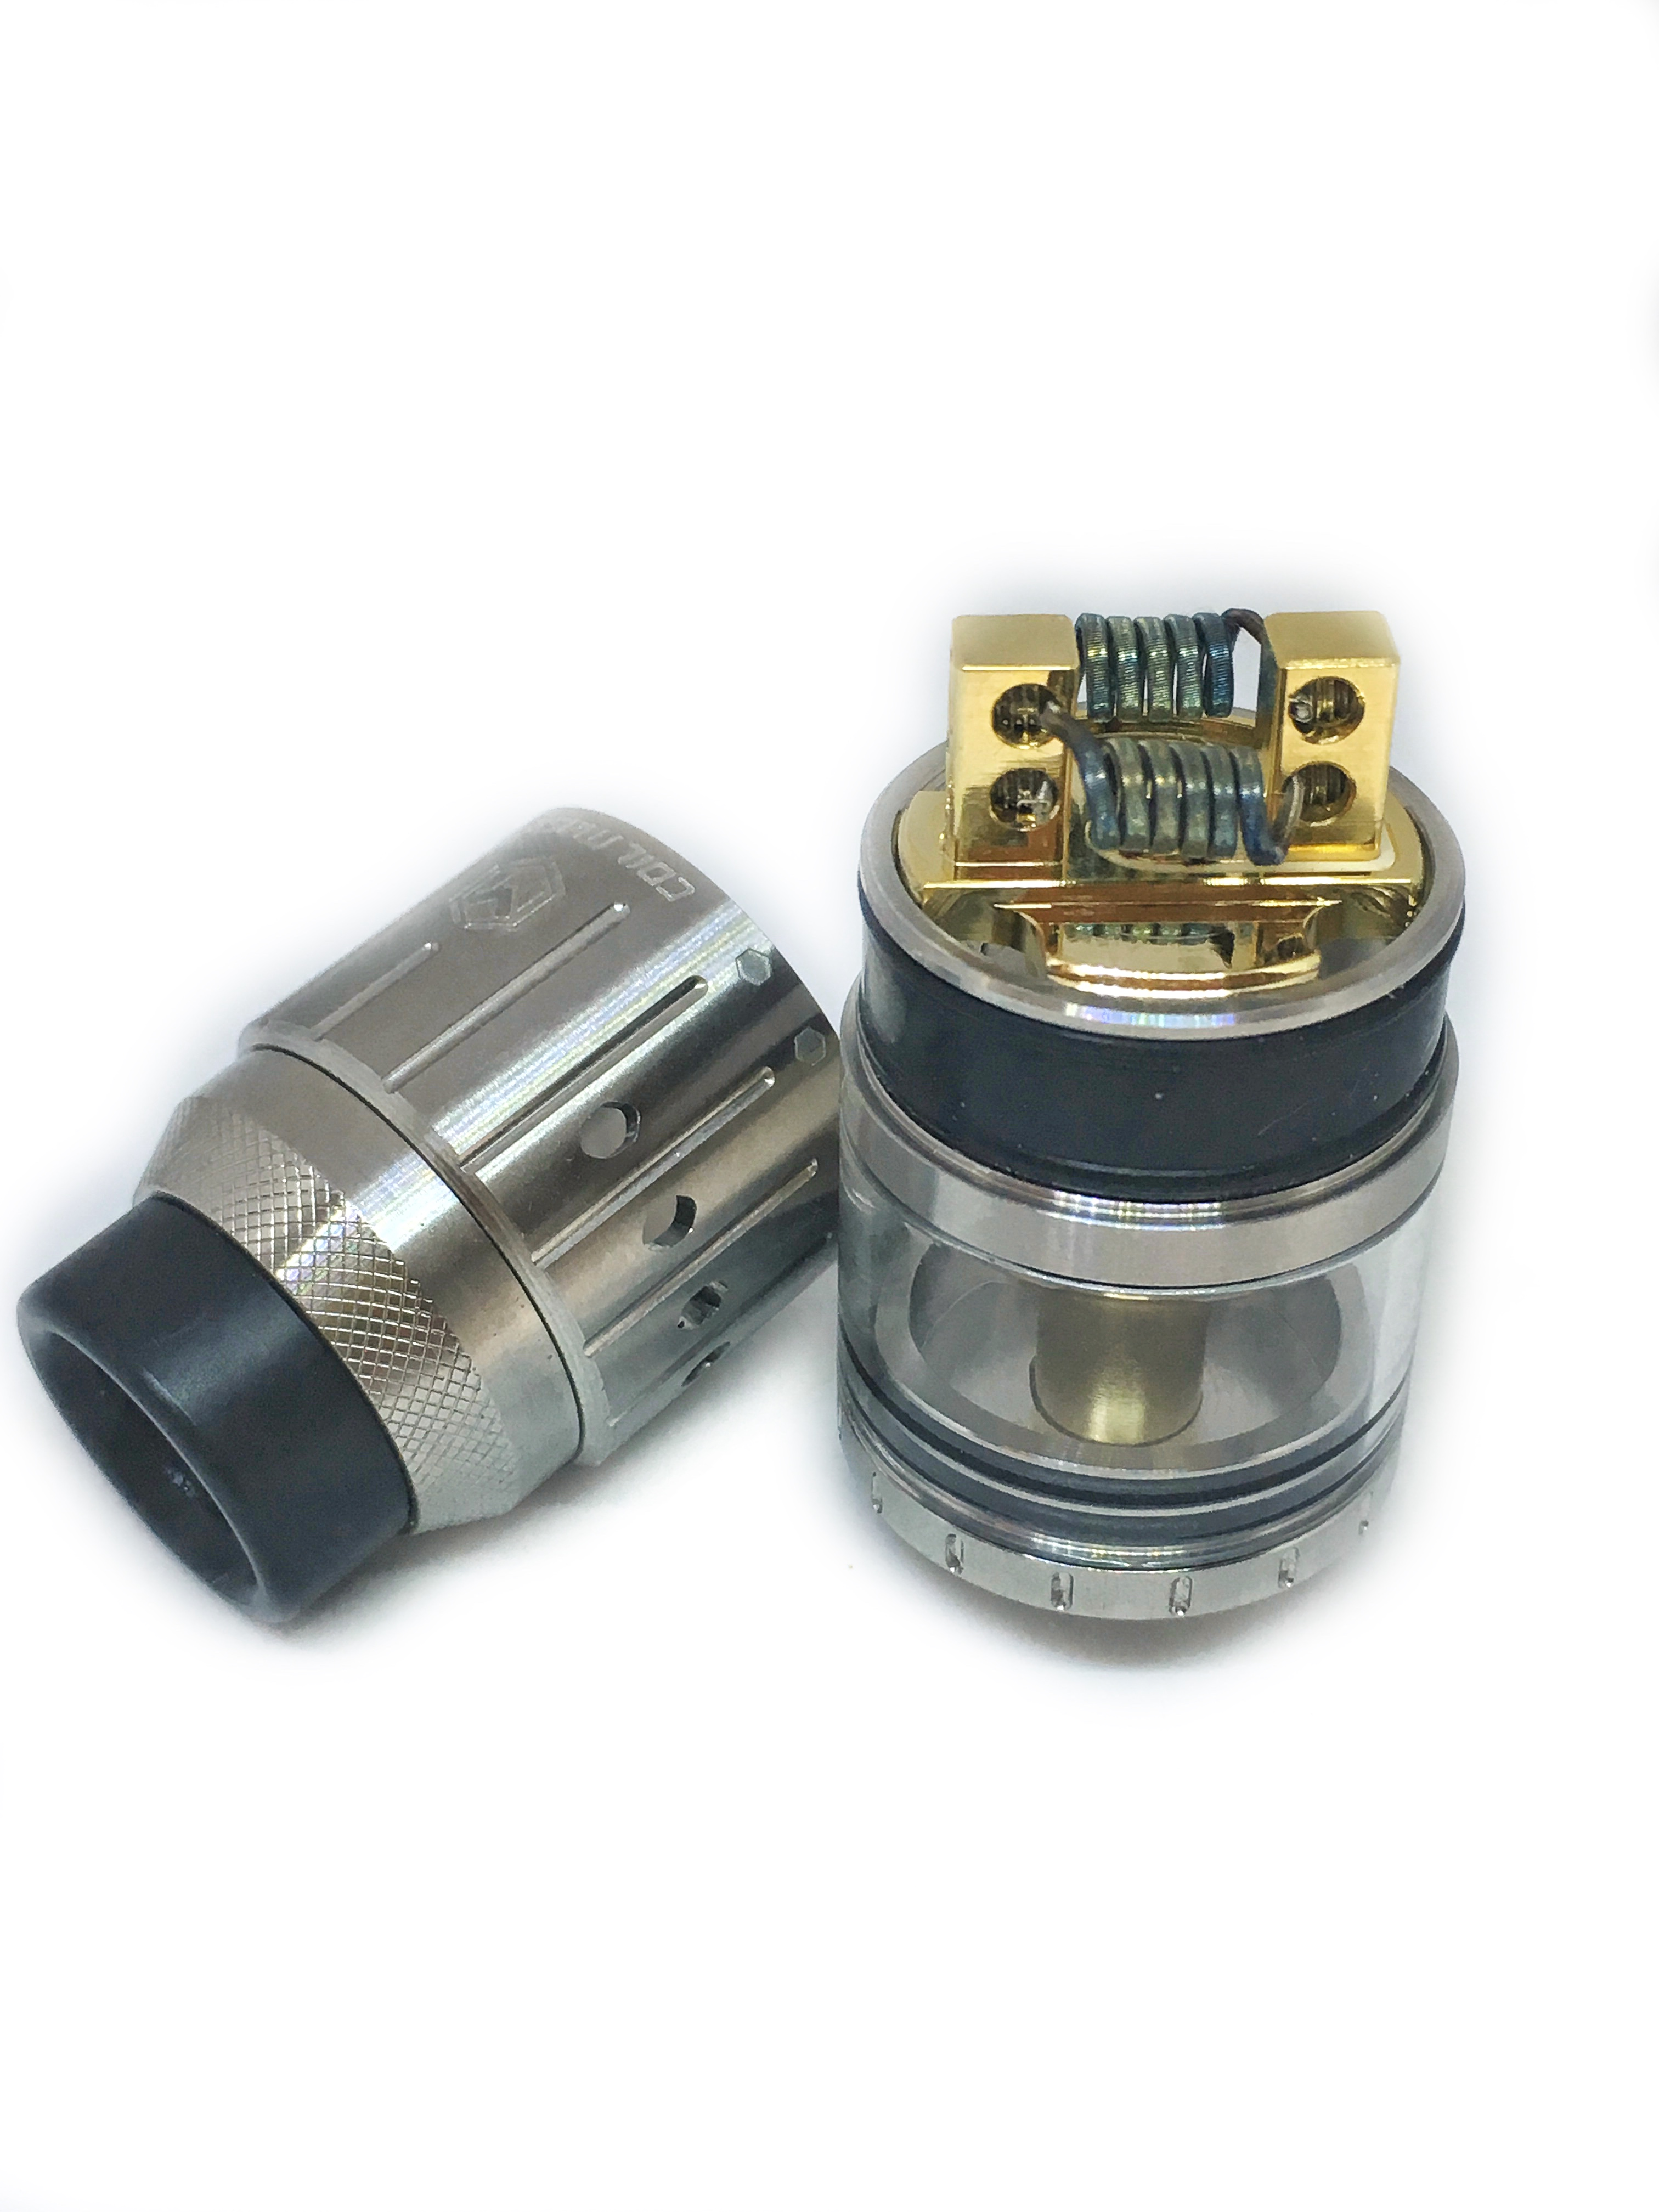 Coilmaster Genesis RDTA, does it perform differently to the